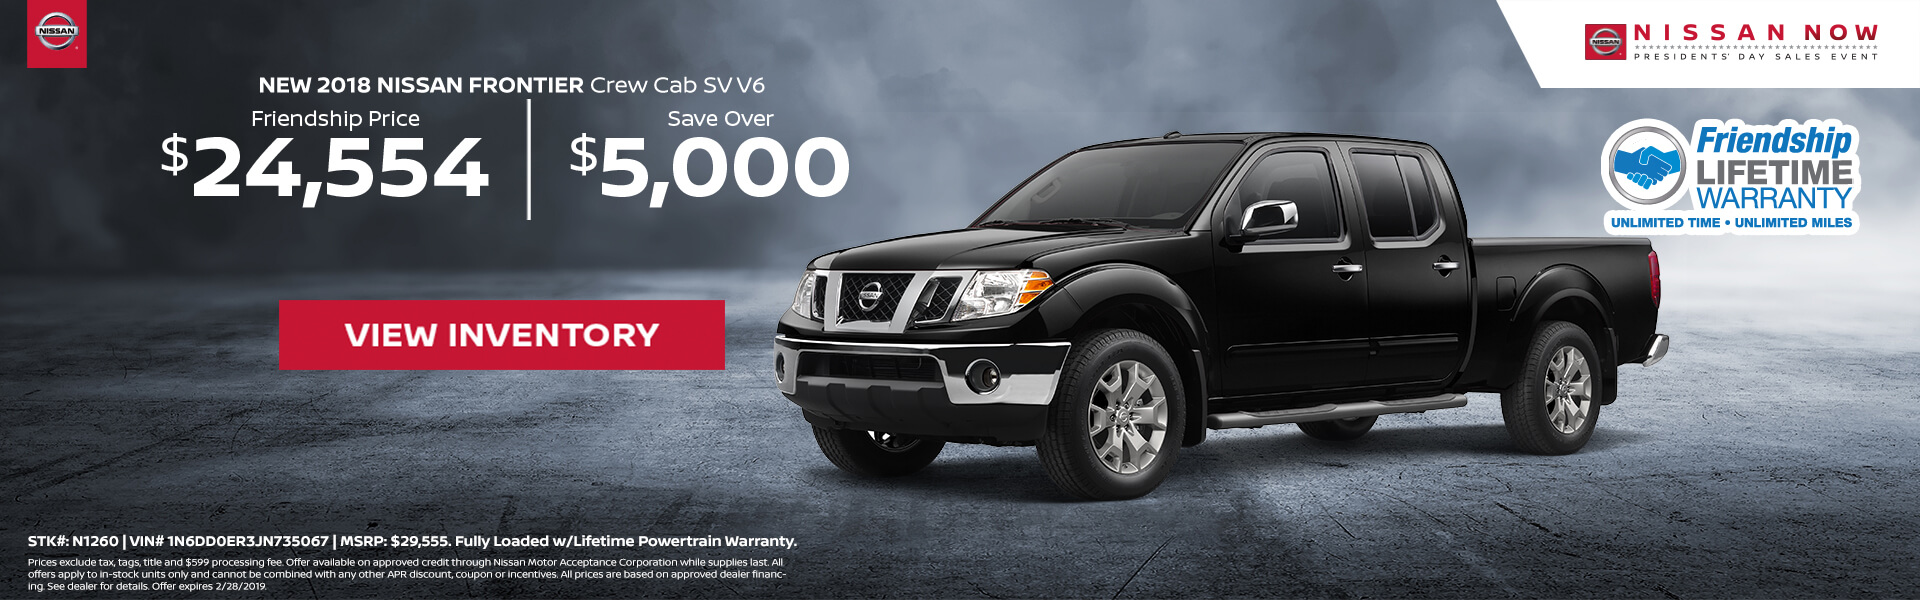 Nissan Frontier $24,554 Purchase